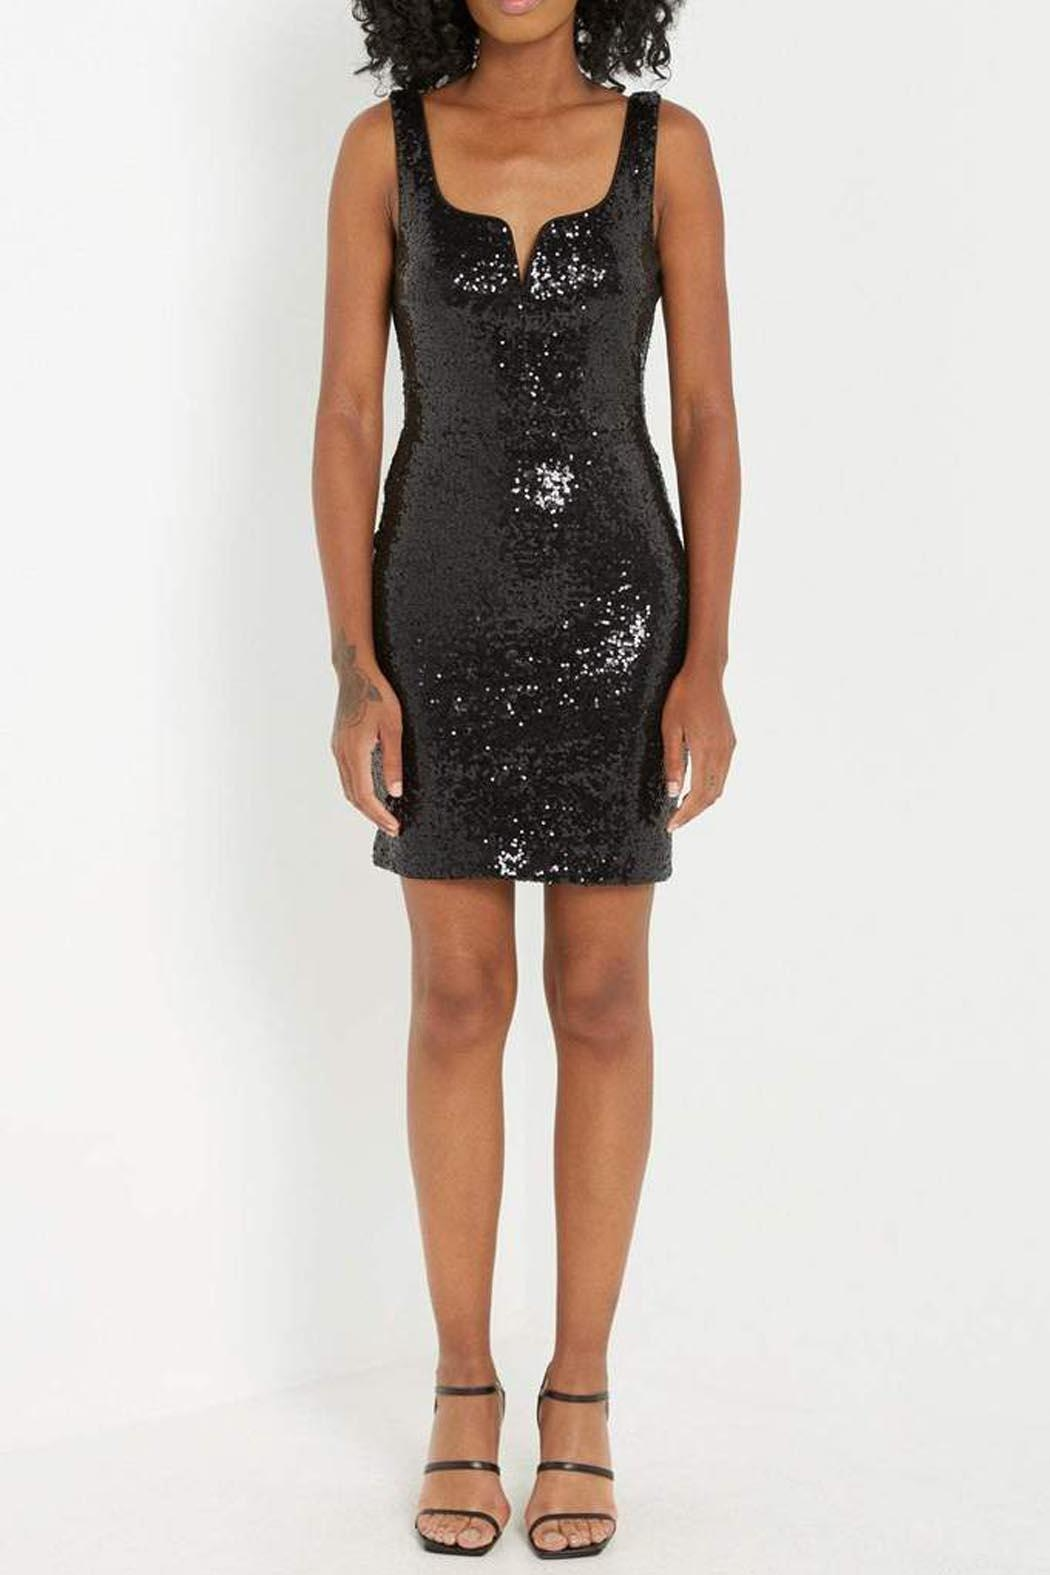 290d85fe74f Soprano Black Sequin Dress from New York by Luna — Shoptiques